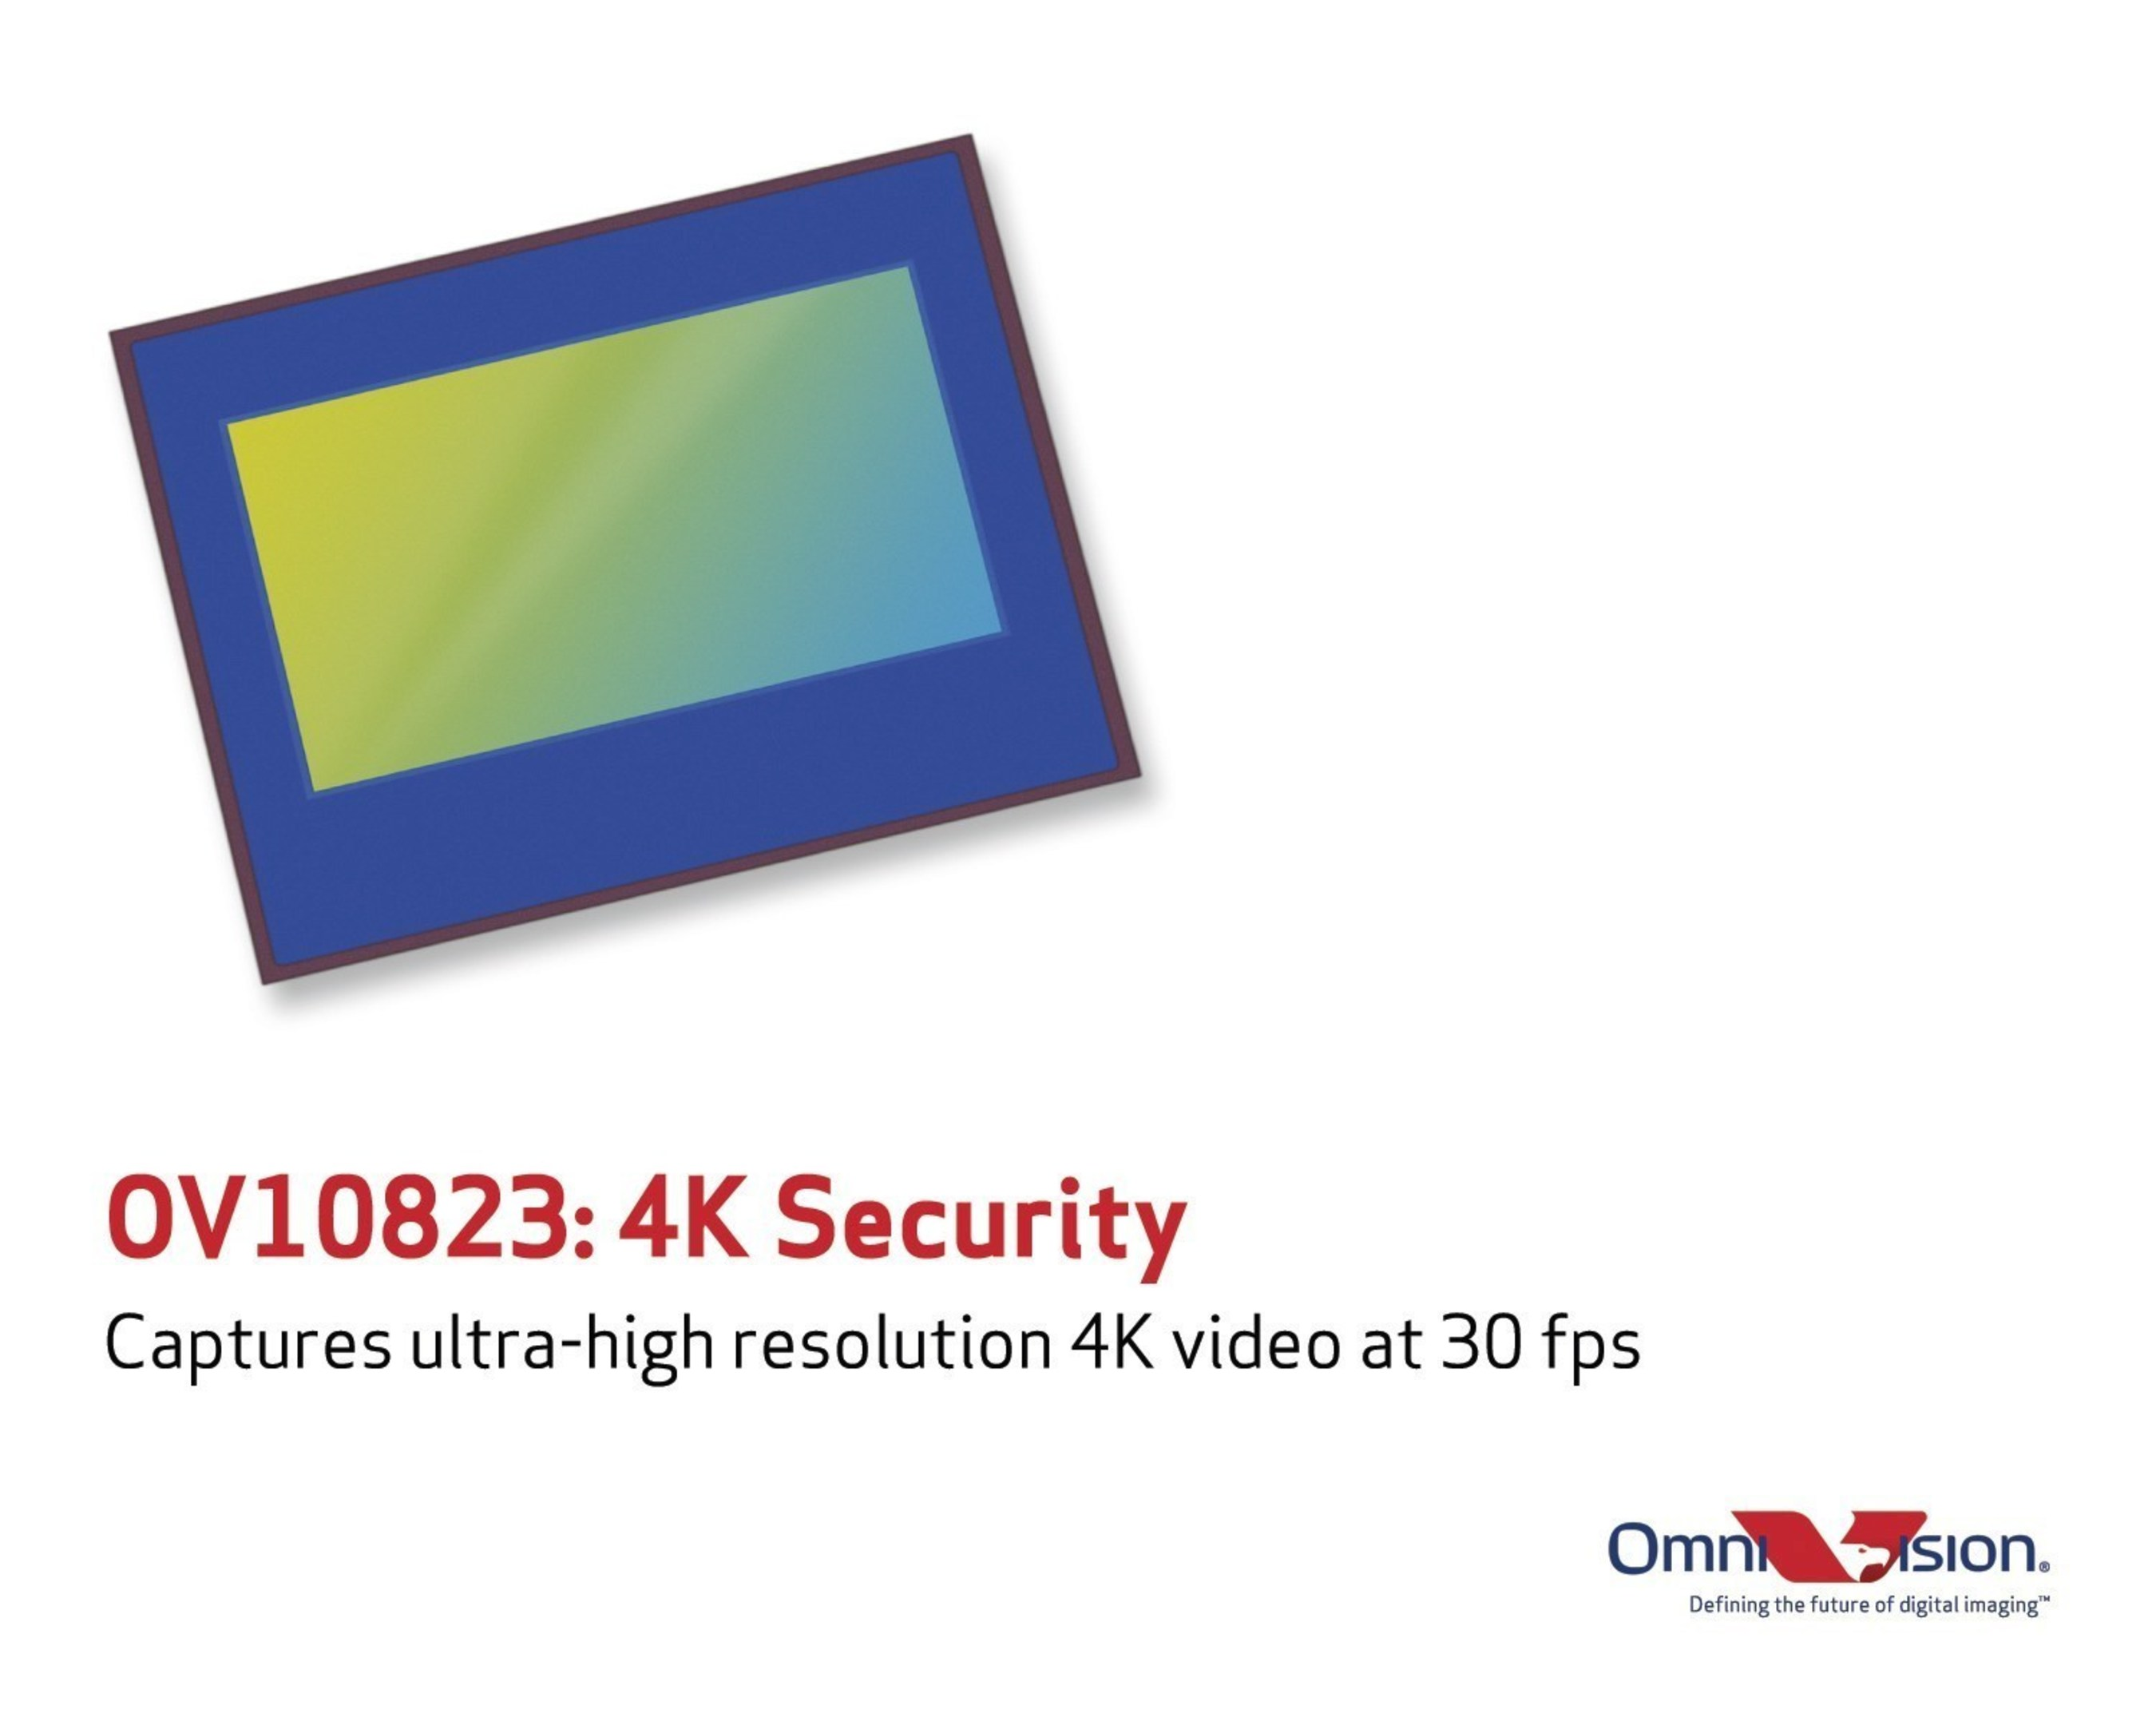 OmniVision's OV10823 CameraChip Sensor Brings 4K Video to Security and Surveillance Applications